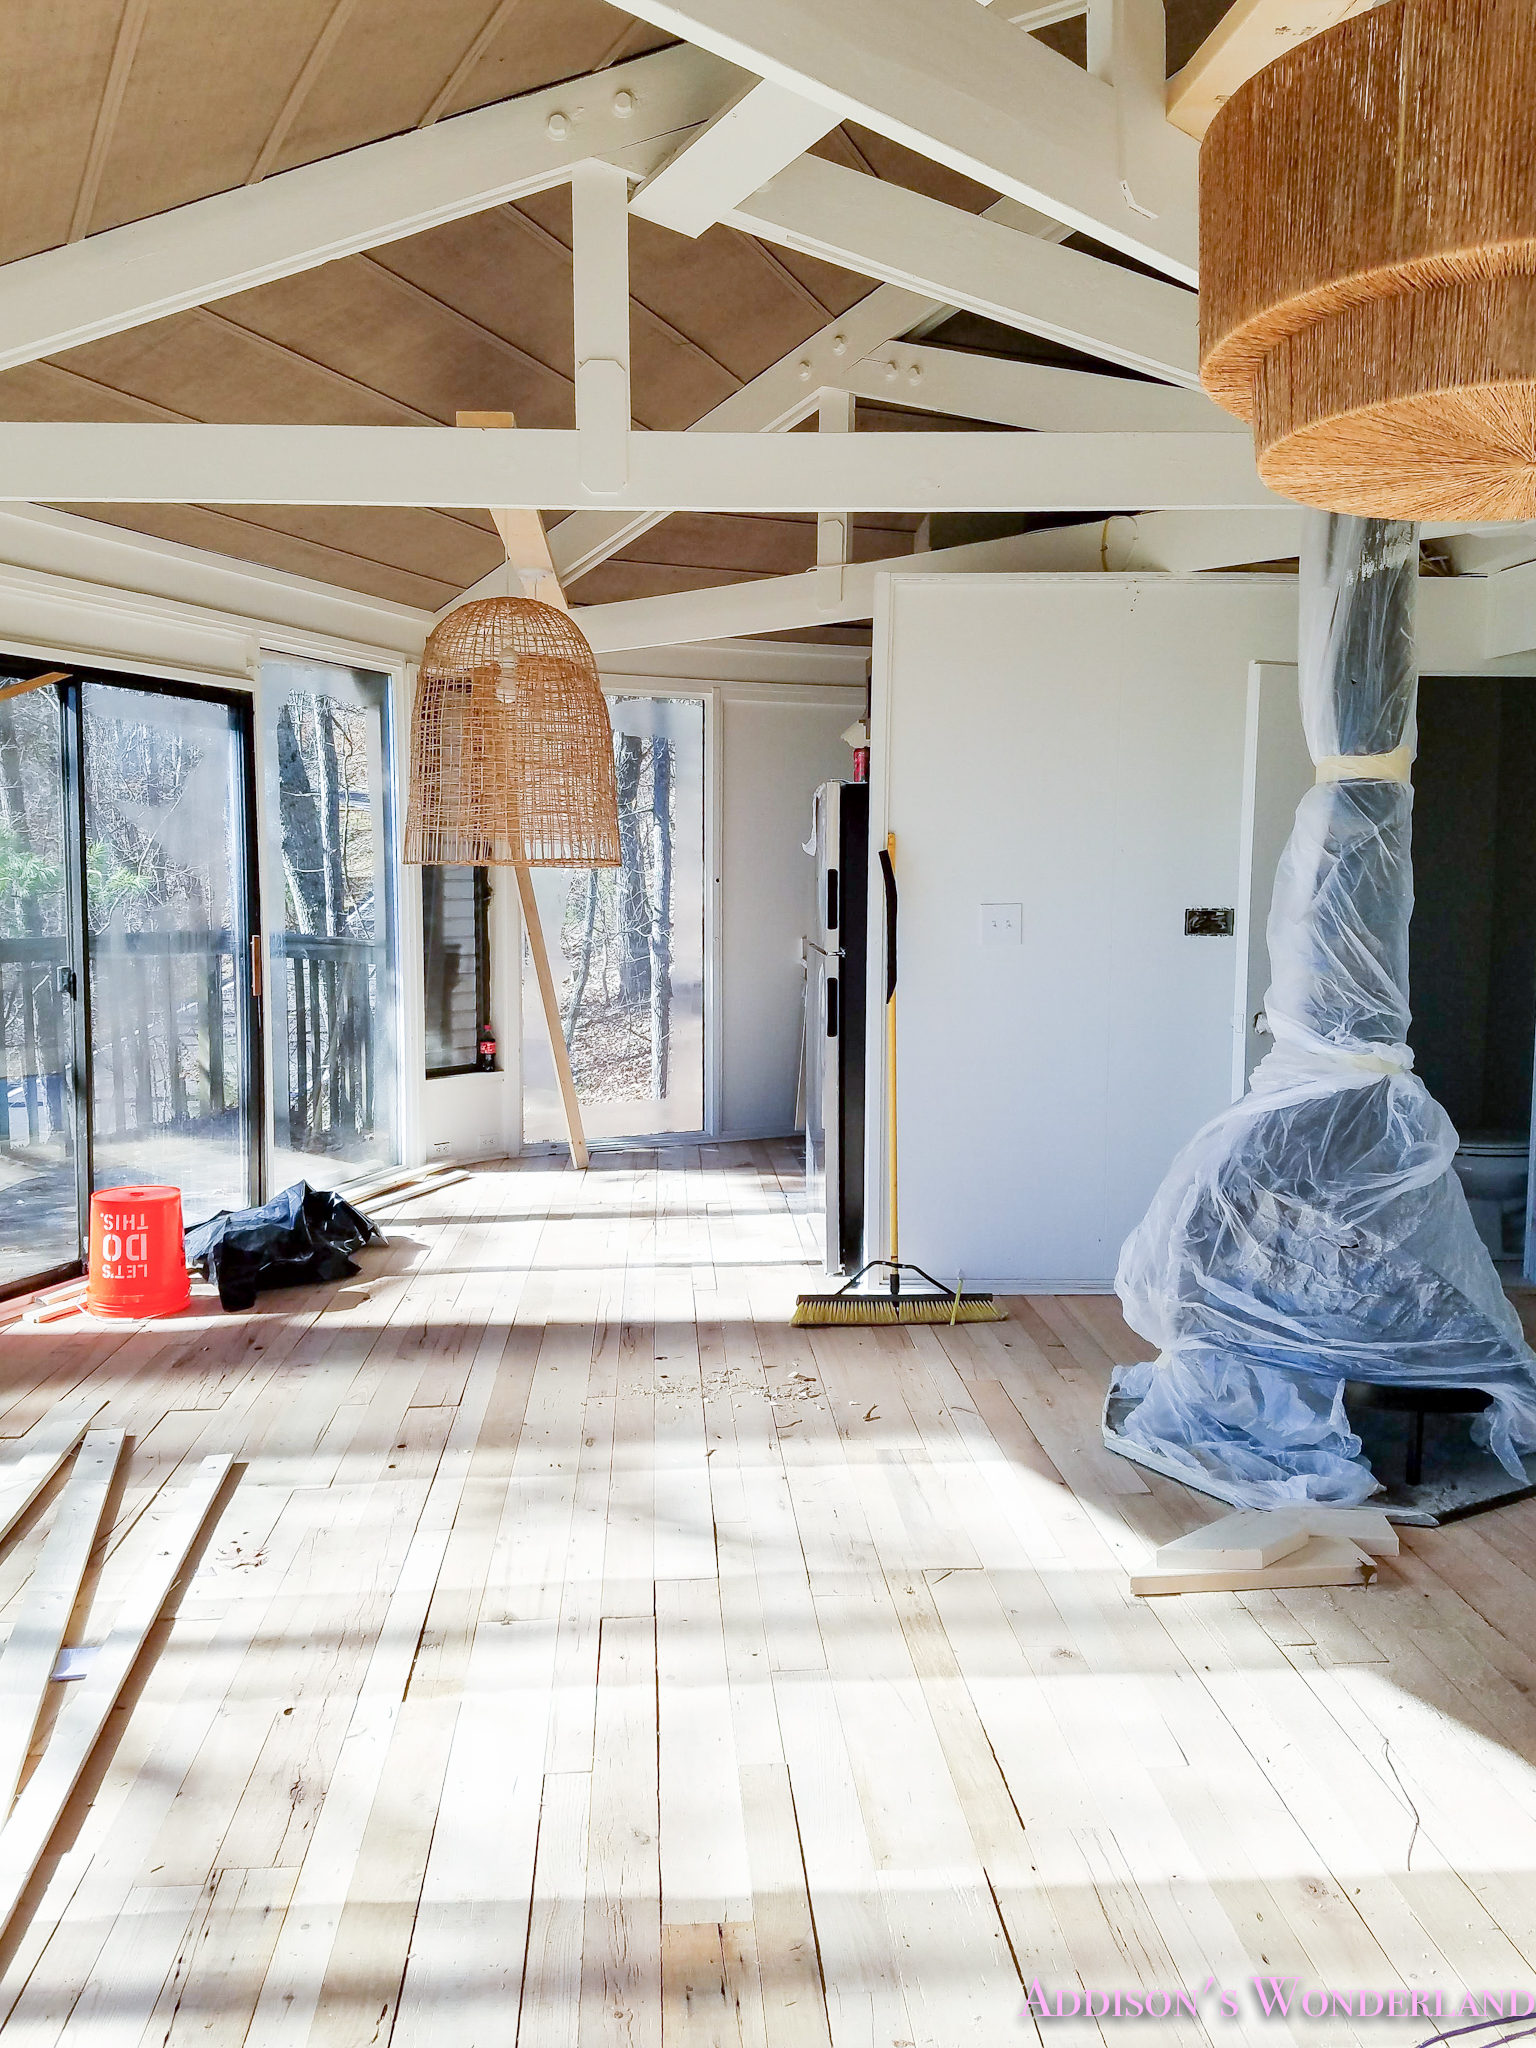 Renovation Update on Our Treehouse Wonderland…